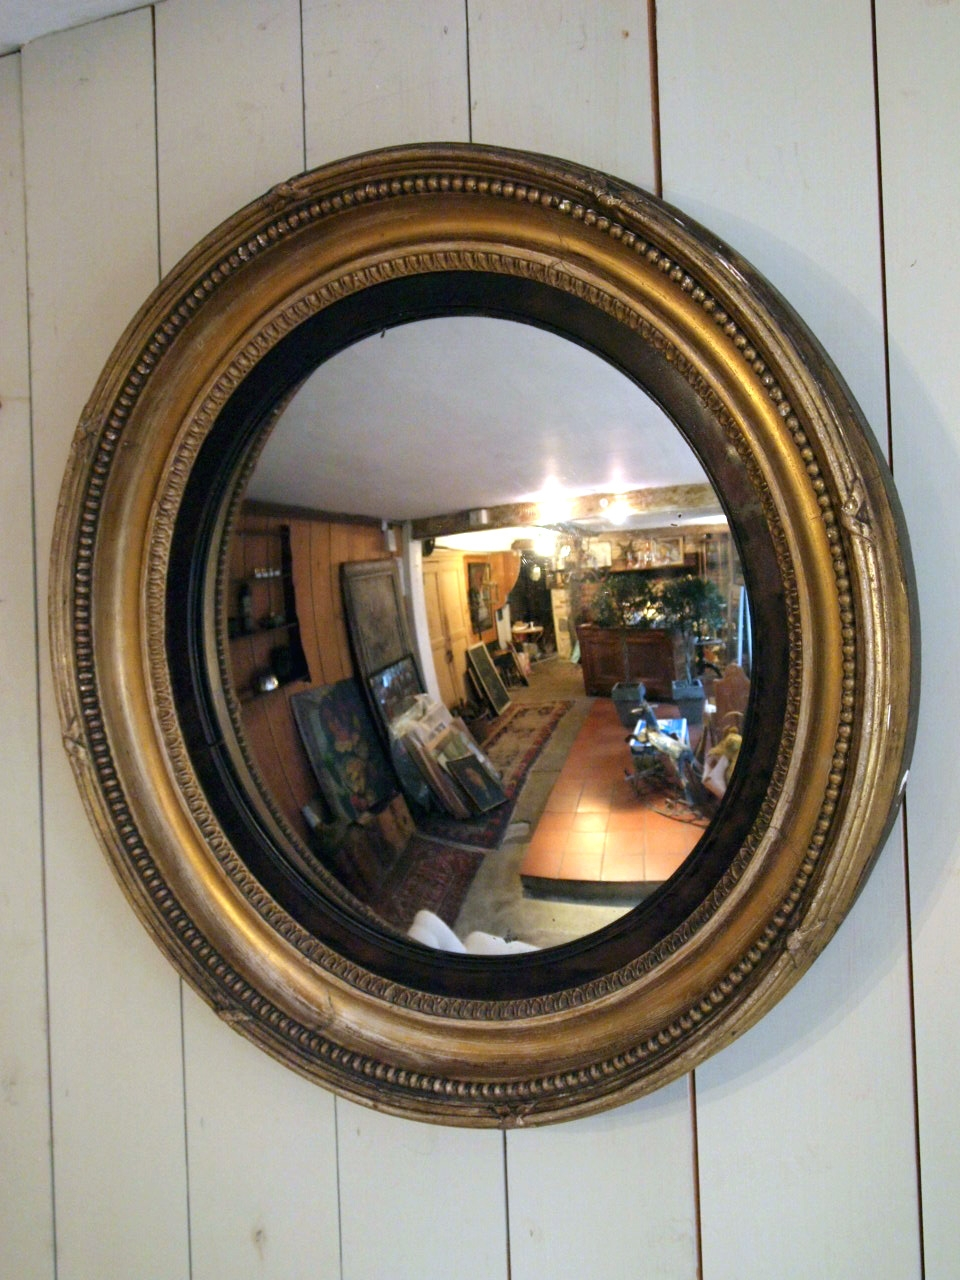 Antique Round Convex Mirror Puckhaber Decorative Antiques Throughout Antique Round Mirrors (View 11 of 15)